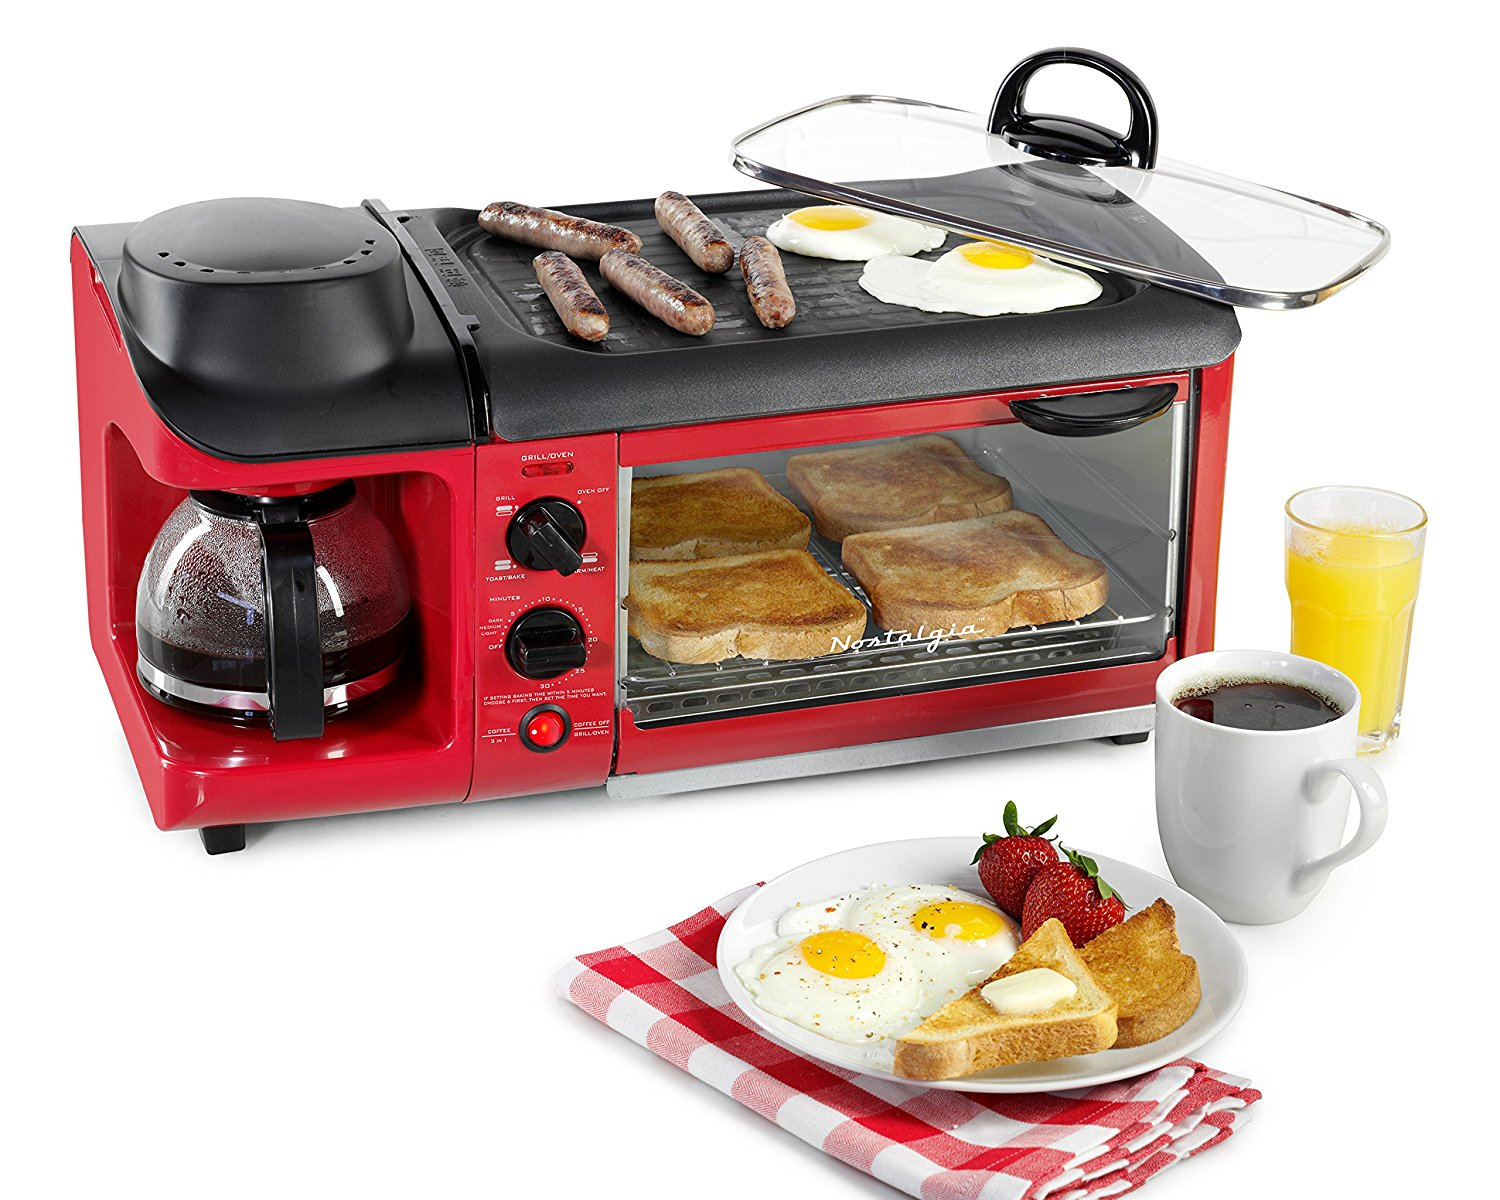 10 Genius & Hilarious Breakfast Gadgets to Make Mornings So Much More Fun